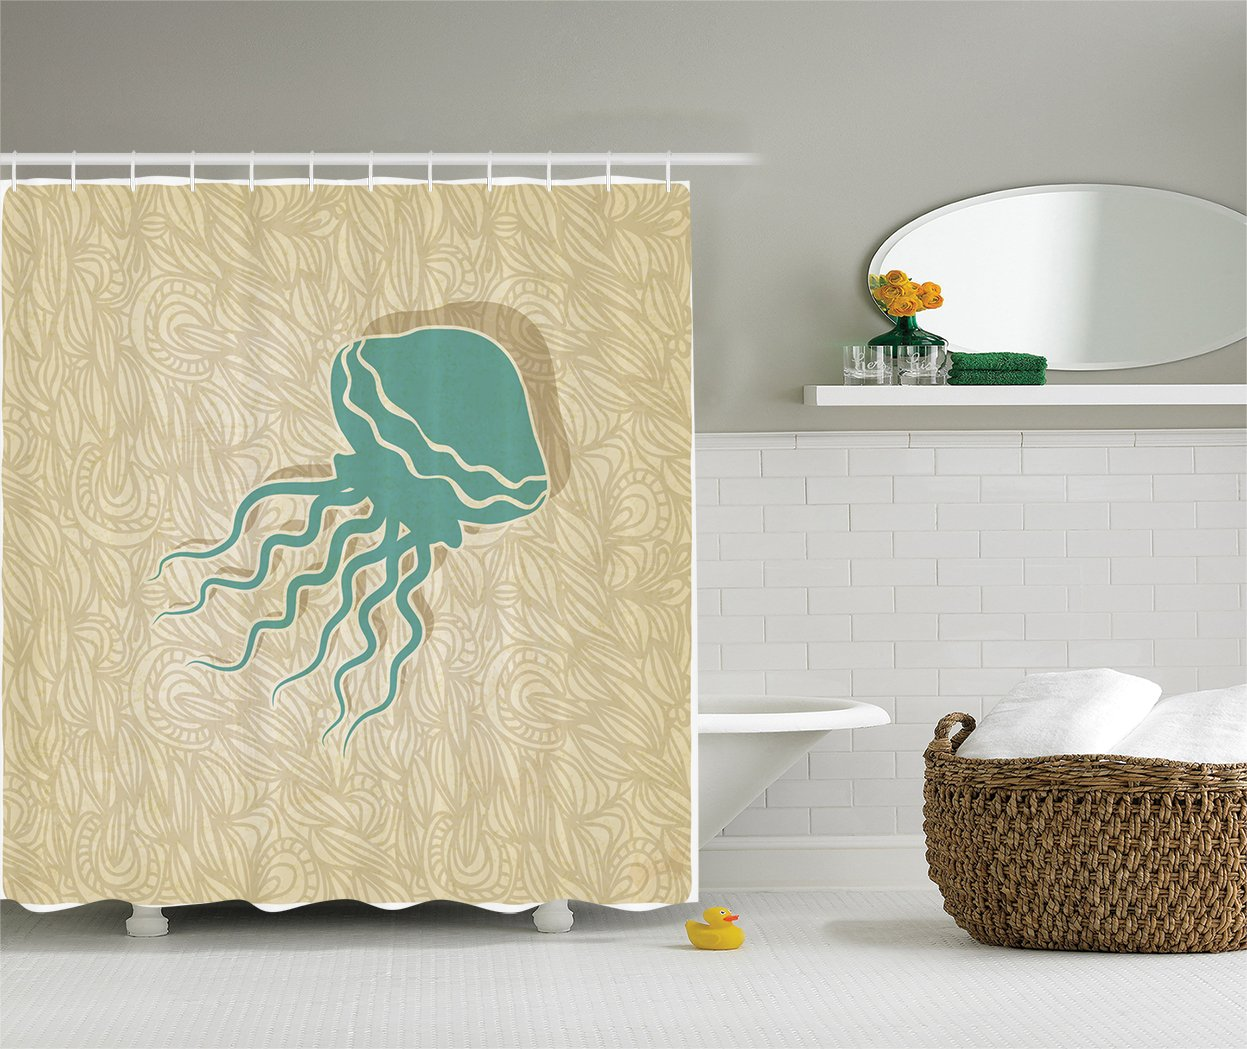 Amazon.com: Mermaid Shower Curtain Decorations by Ambesonne ...